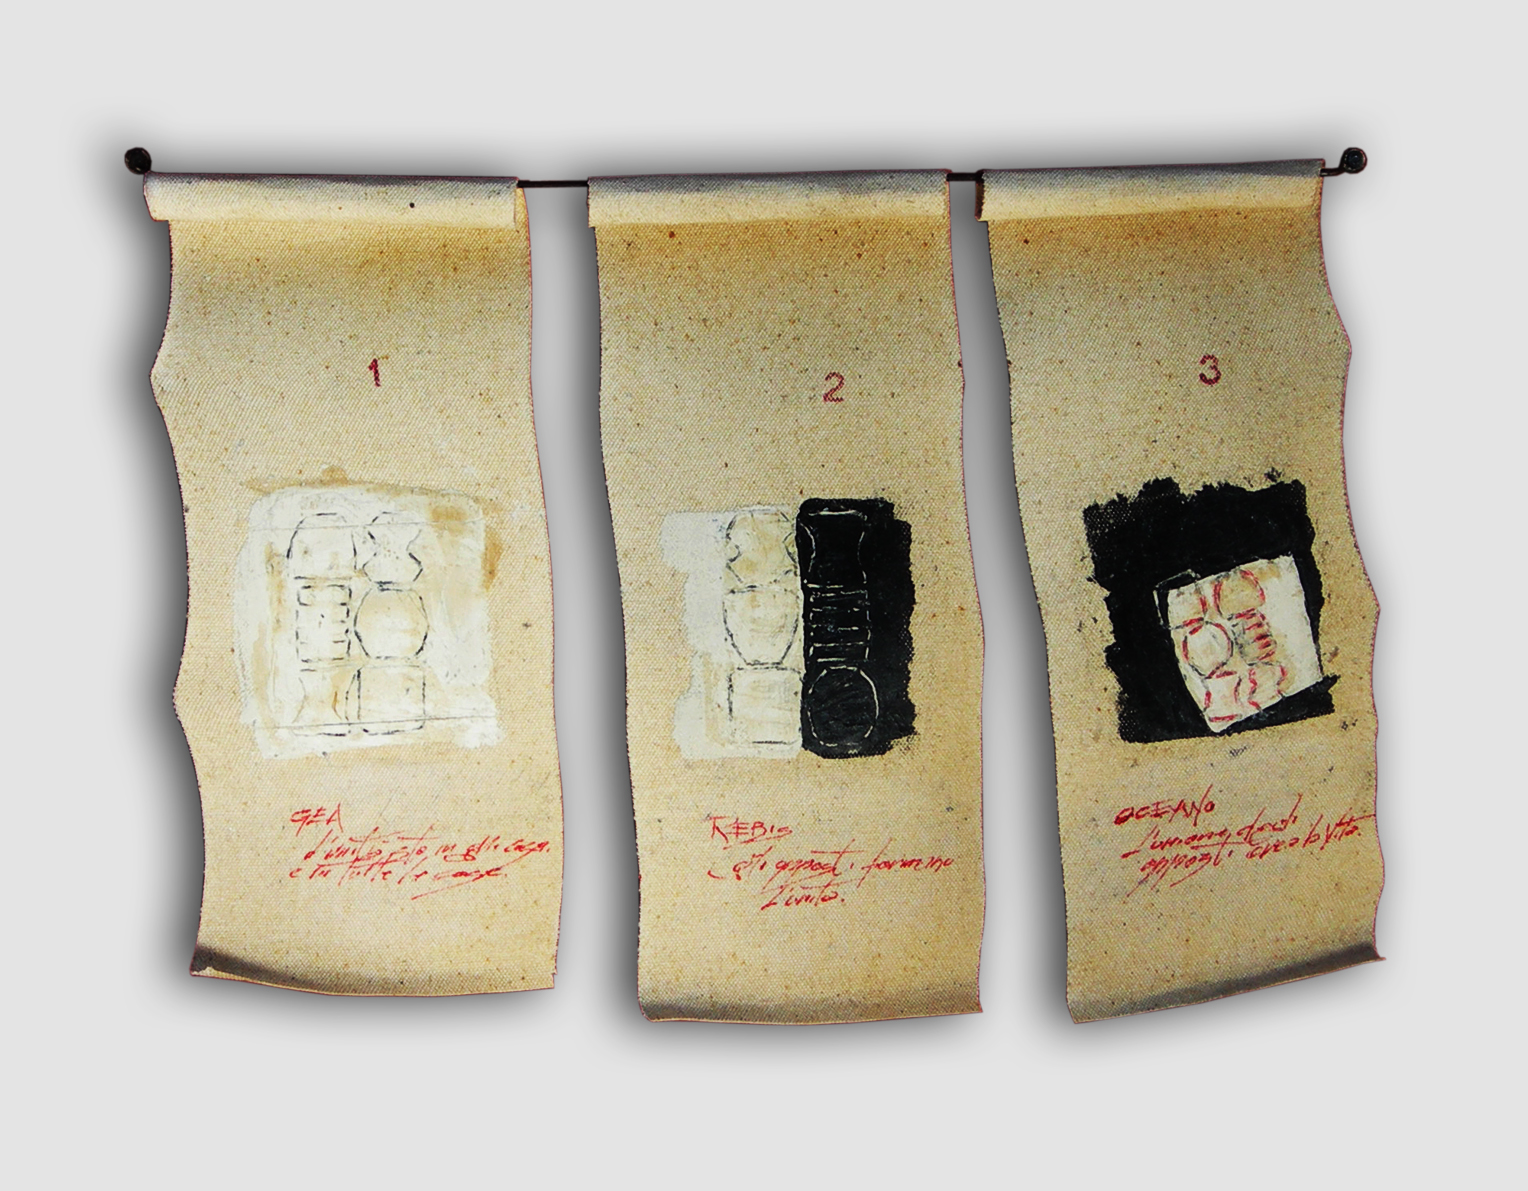 023-DISEGNO VOLANTE (triptych)  -2013  -mixed media on canvas  -44x30 cm. variable